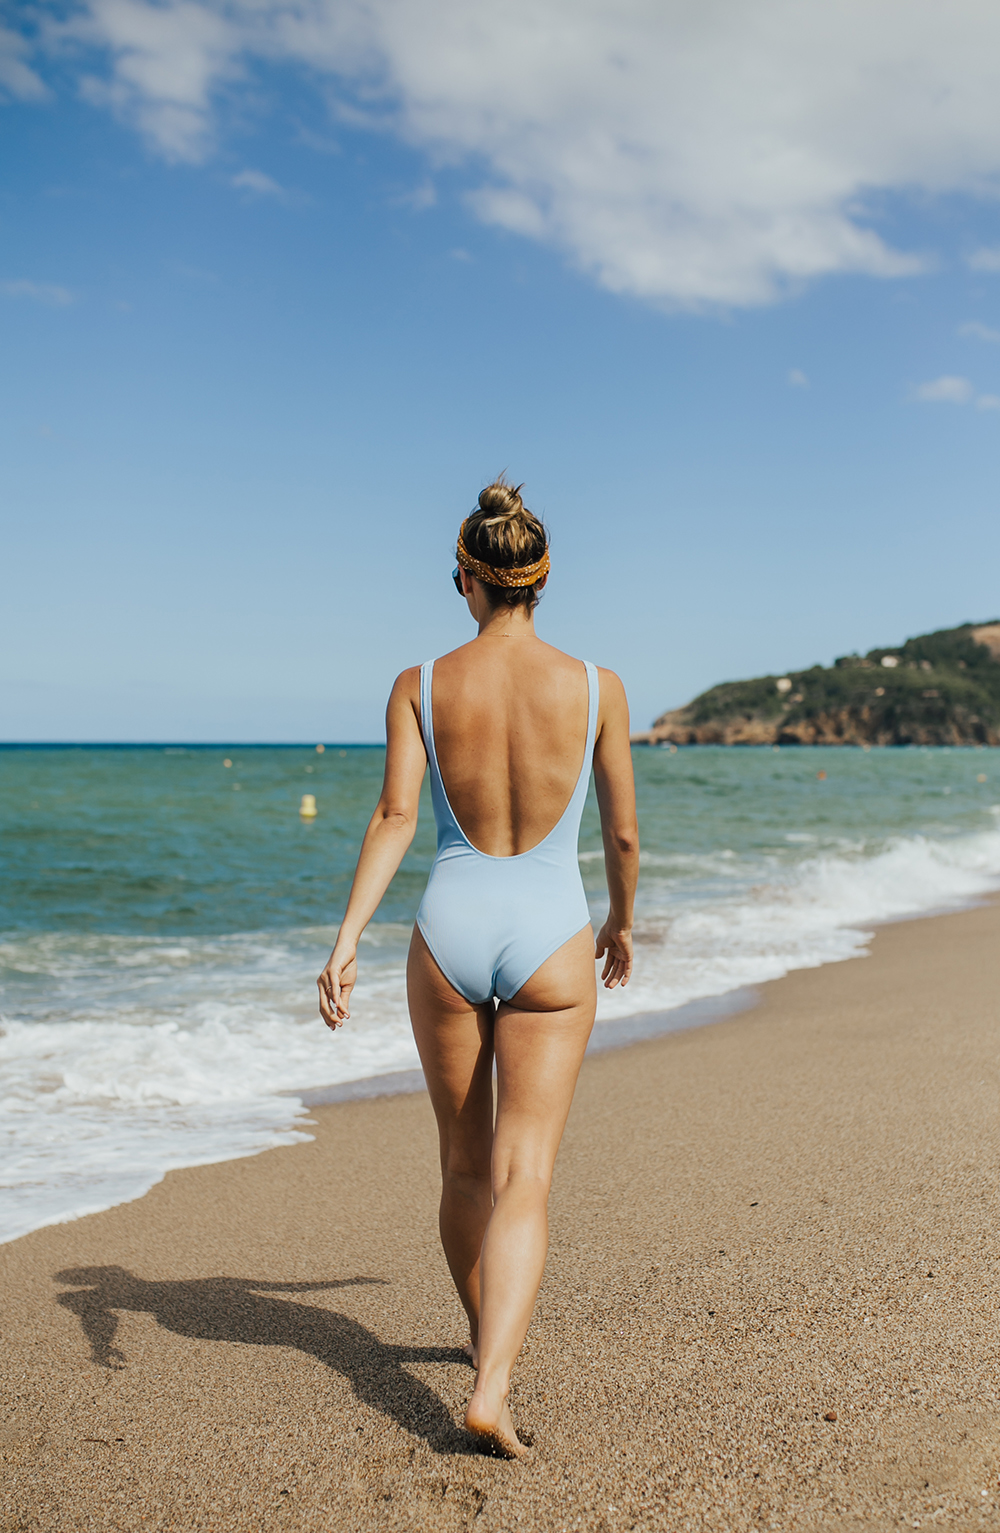 livvyland-blog-olivia-watson-fashion-travel-blogger-shop-spring-solid-and-striped-sophia-one-piece-swimsuit-periwinkle-blue-costa-brava-pals-beach-barecelona-spain-9